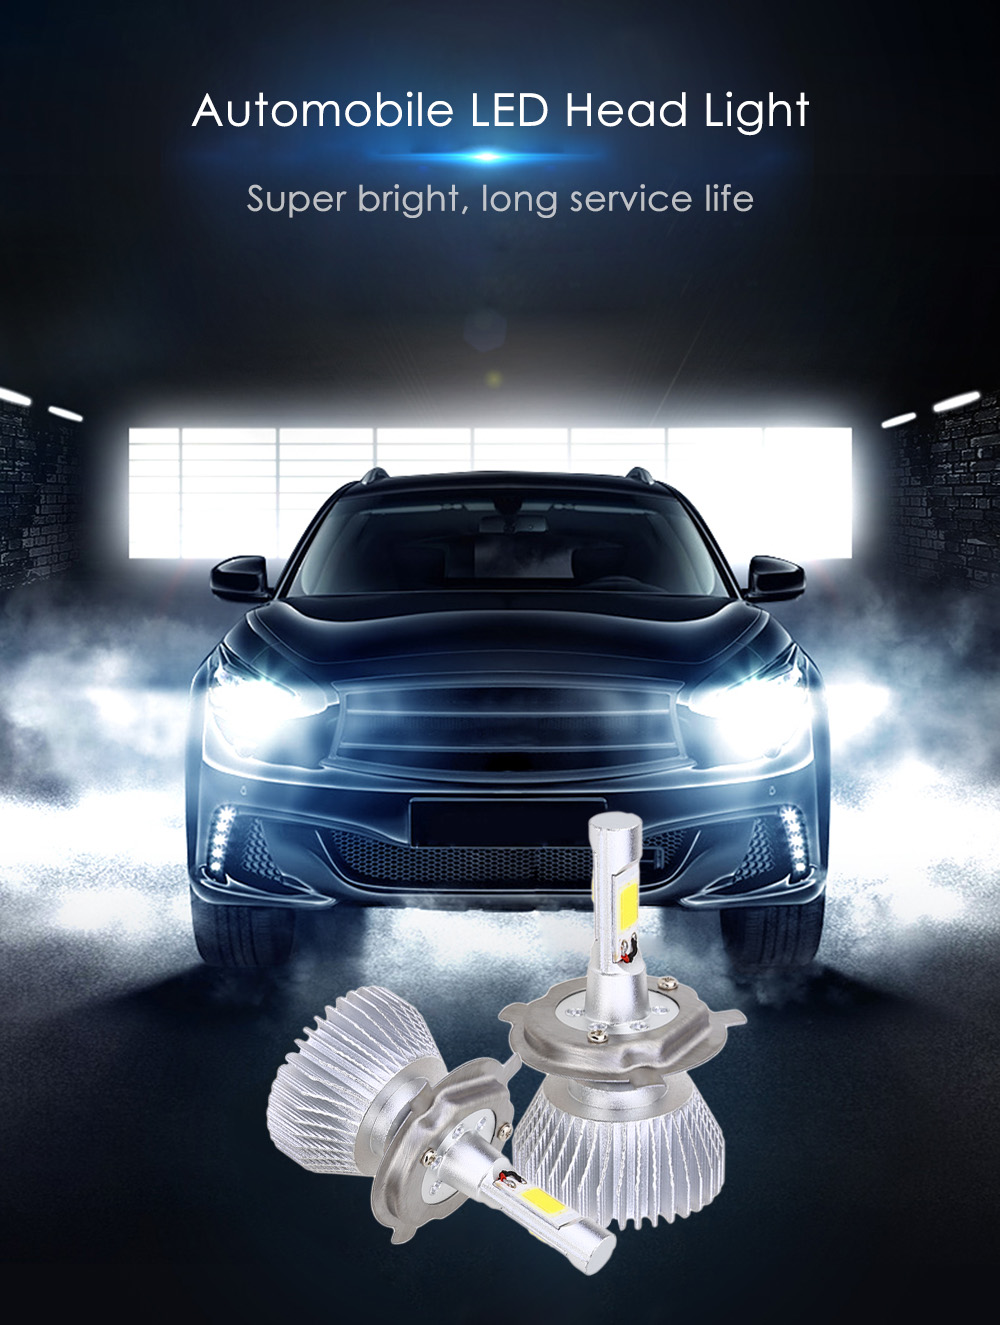 Paired C6 H4 60W LED Automobile Headlight Vibration Resistance